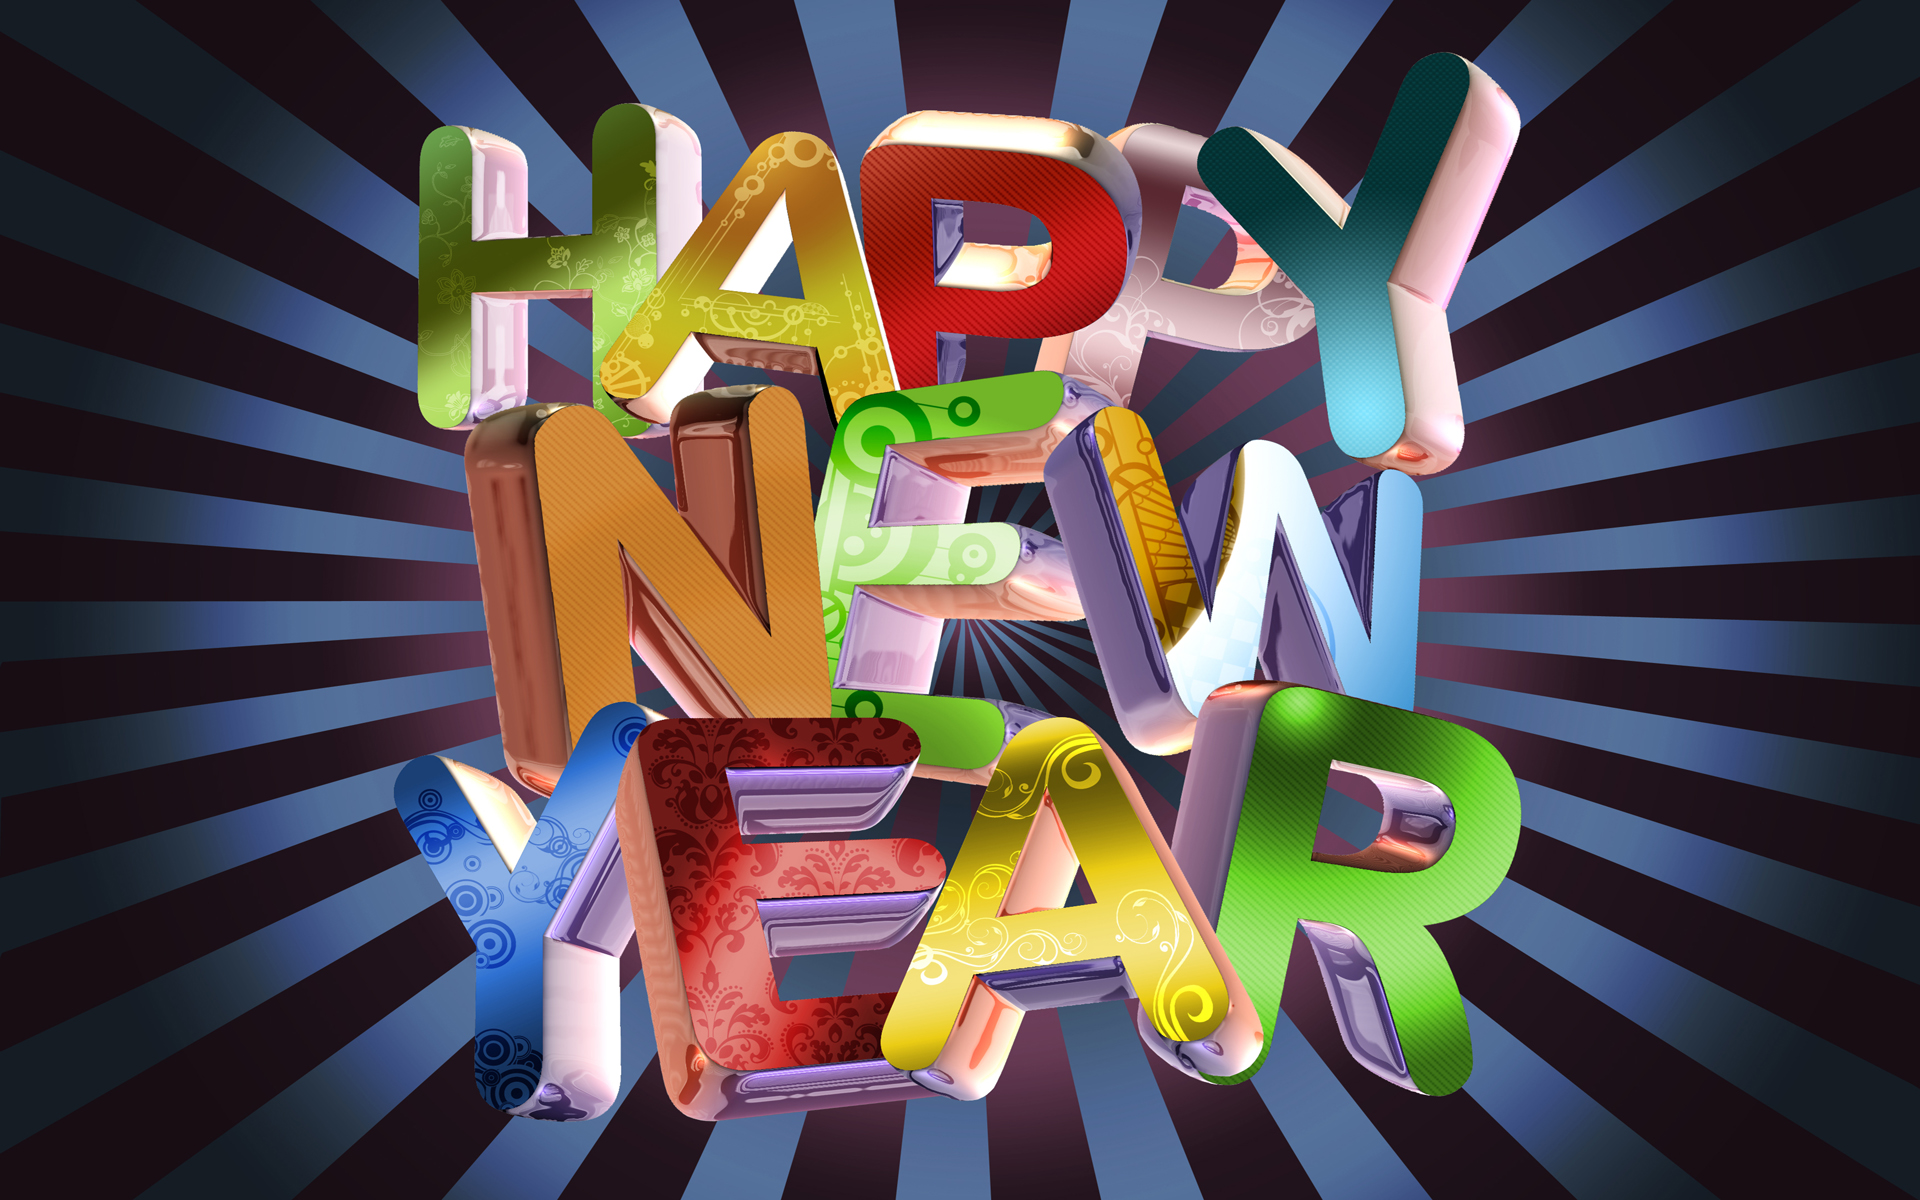 Holidays New Year wallpapers New Year 2011 025359 jpg 1920x1200